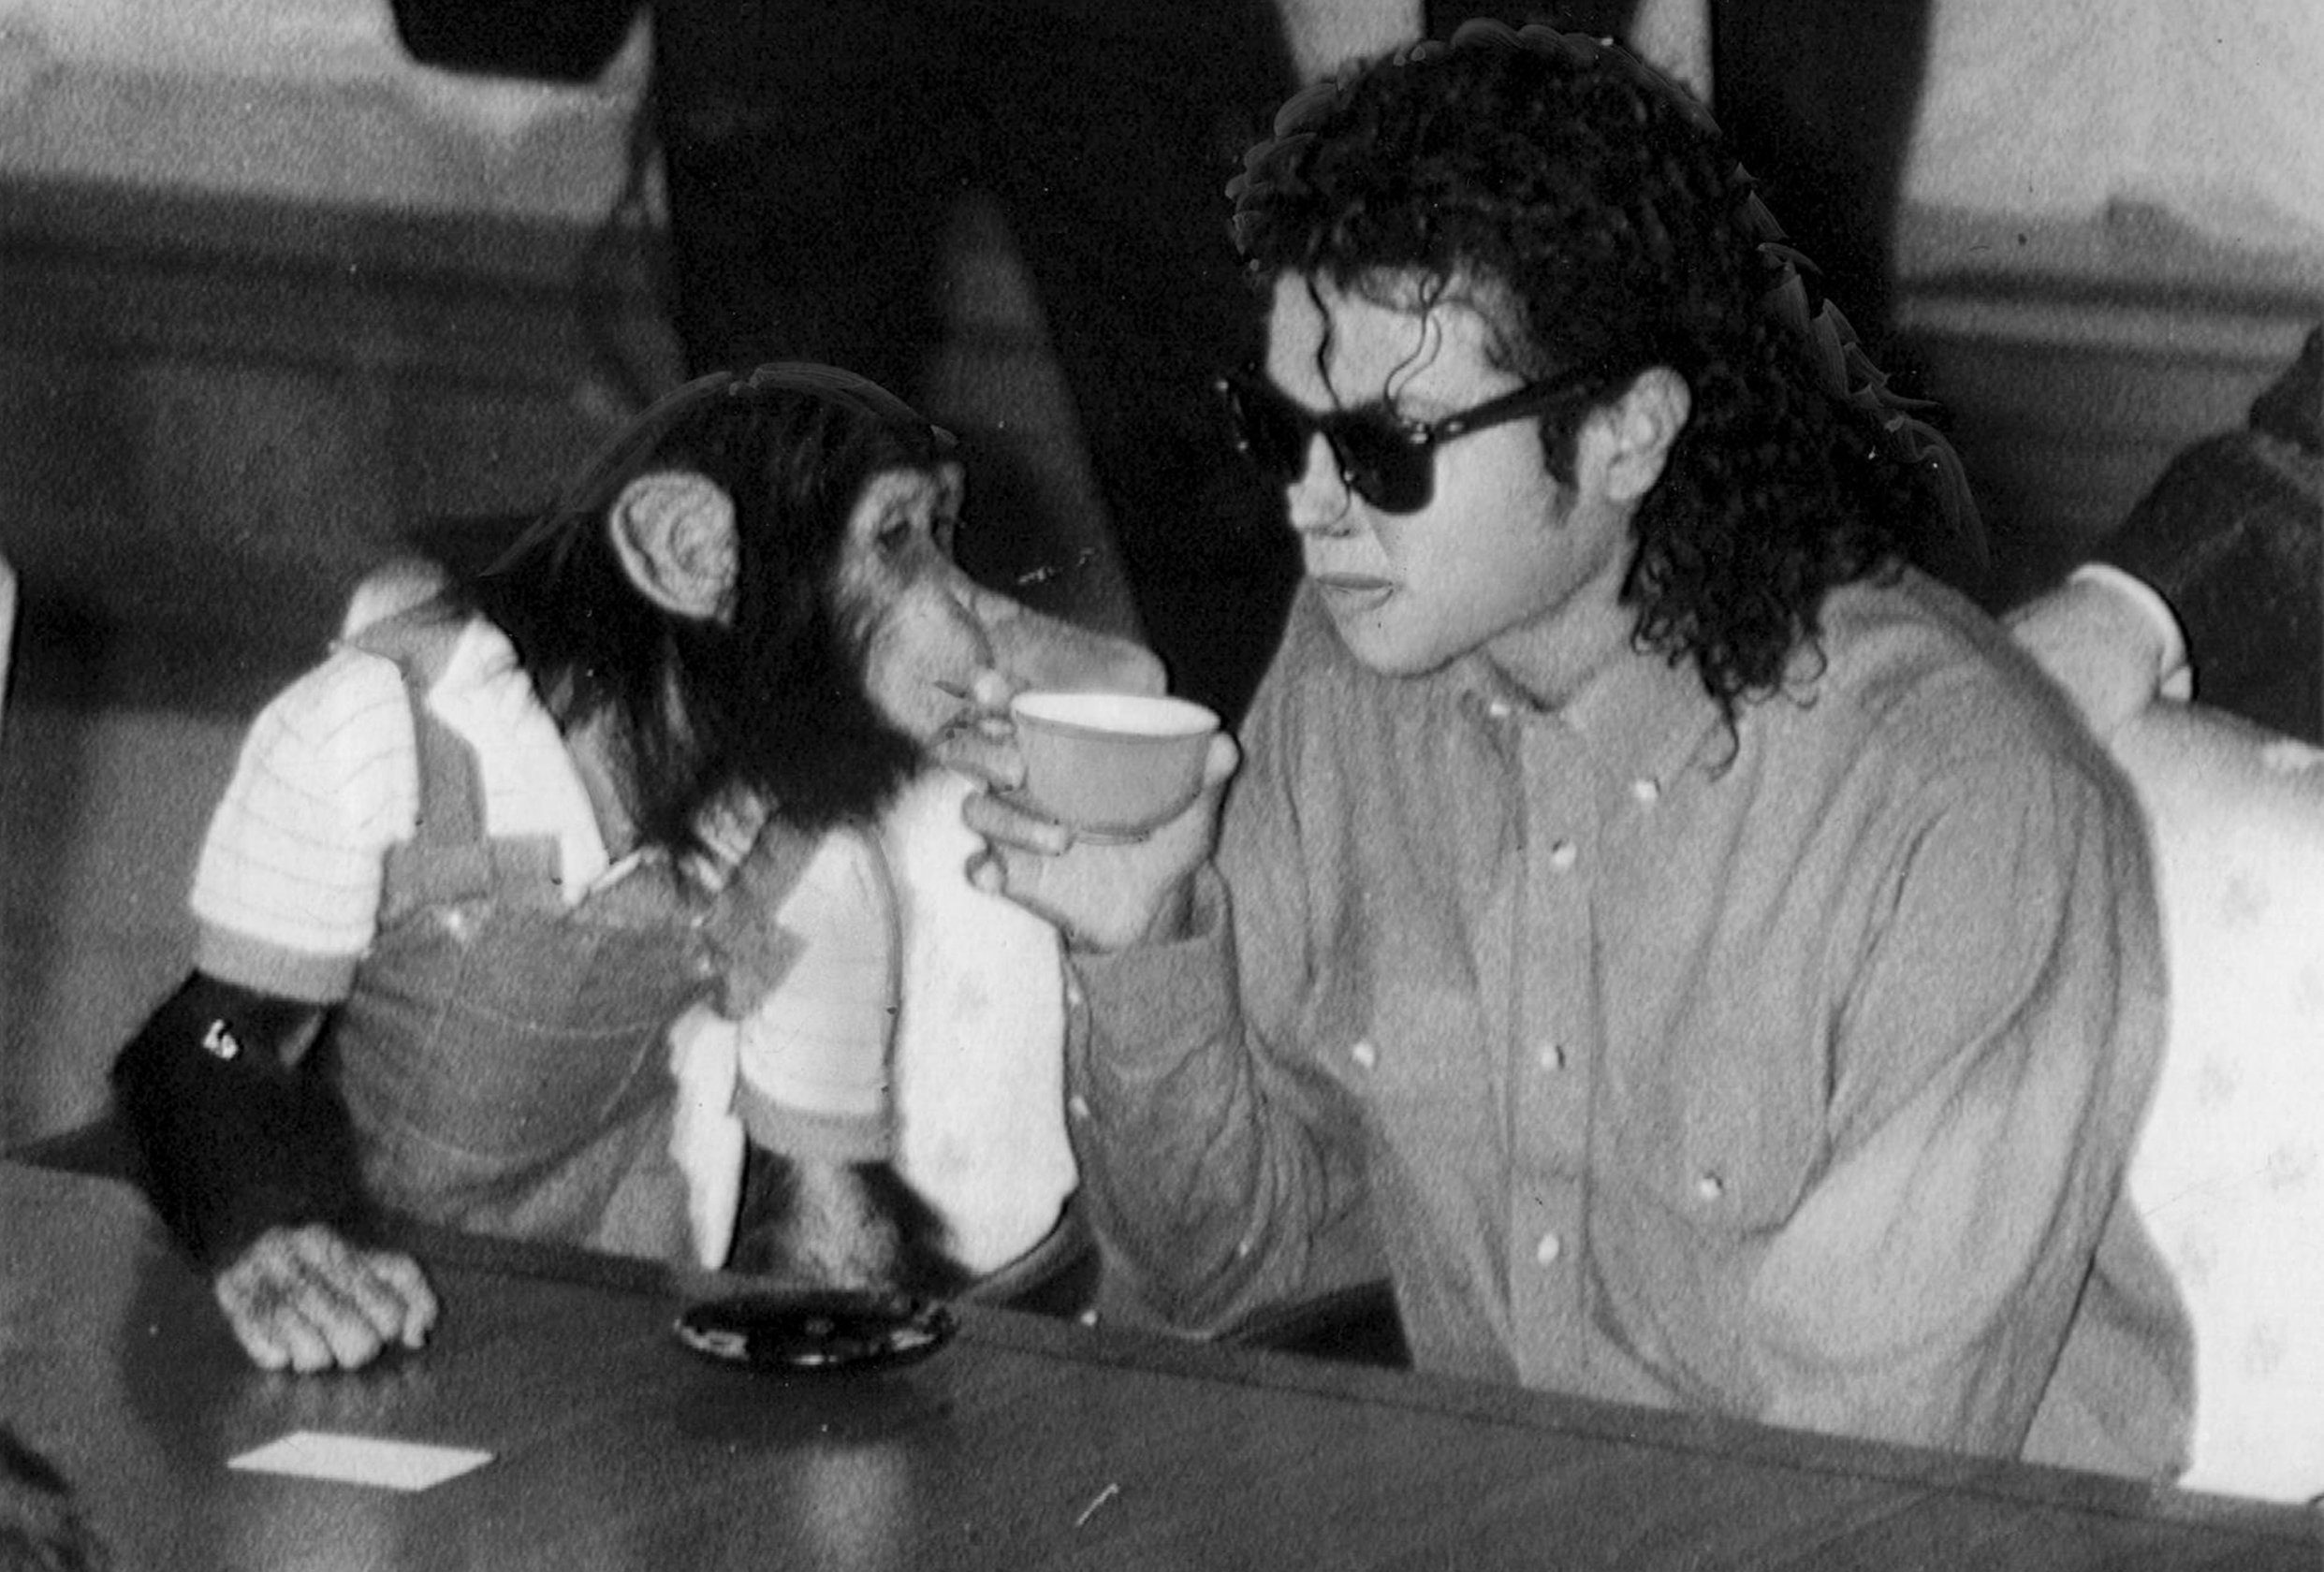 Image Credit: Getty Images / Michael Jackson and his pet chimpanzee, Bubbles.